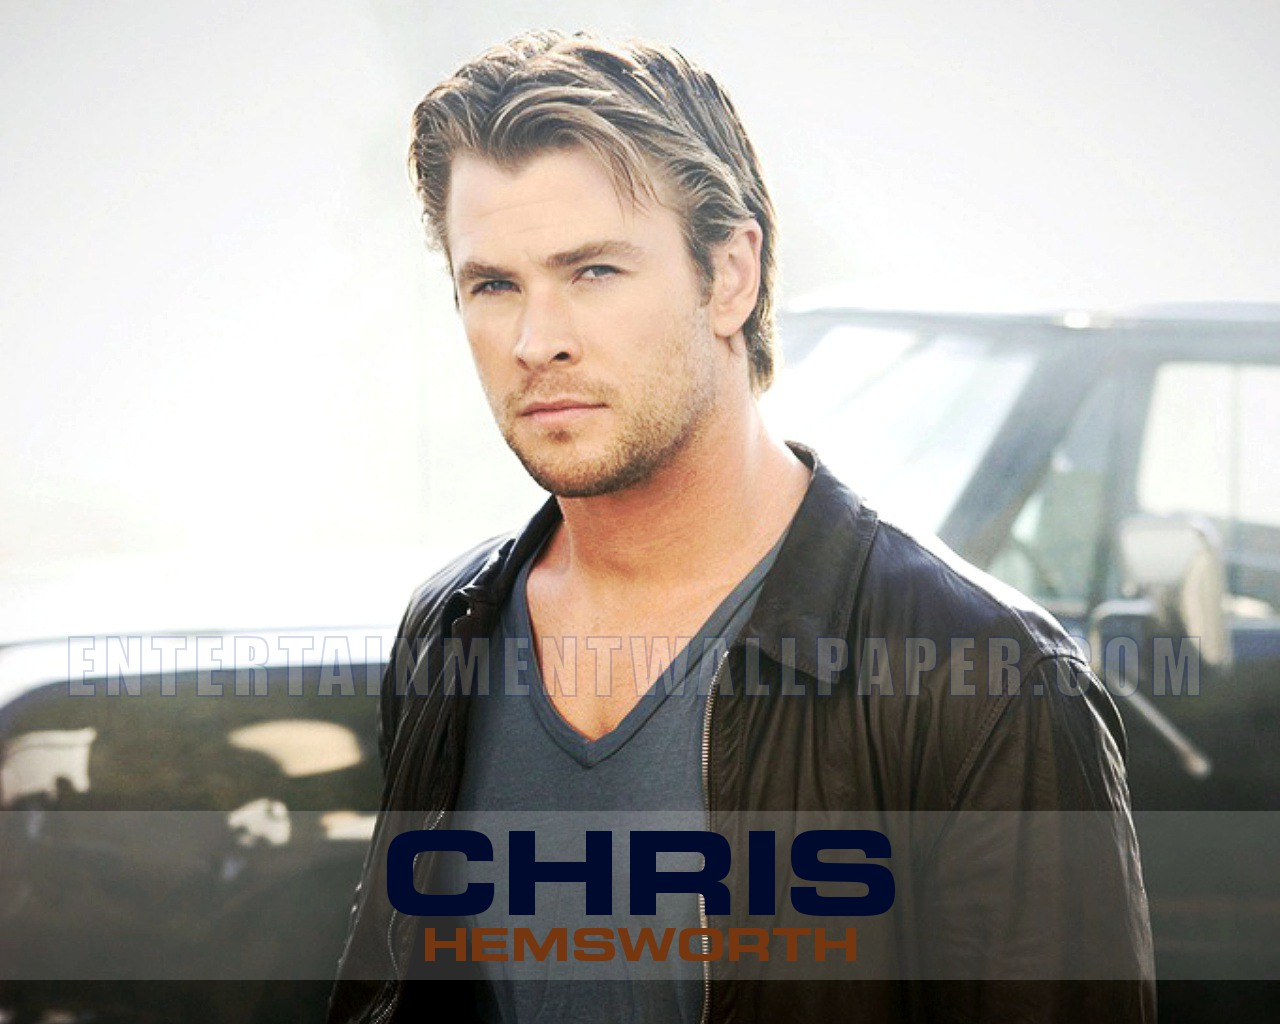 Chris Hemsworth Chris Hemsworth